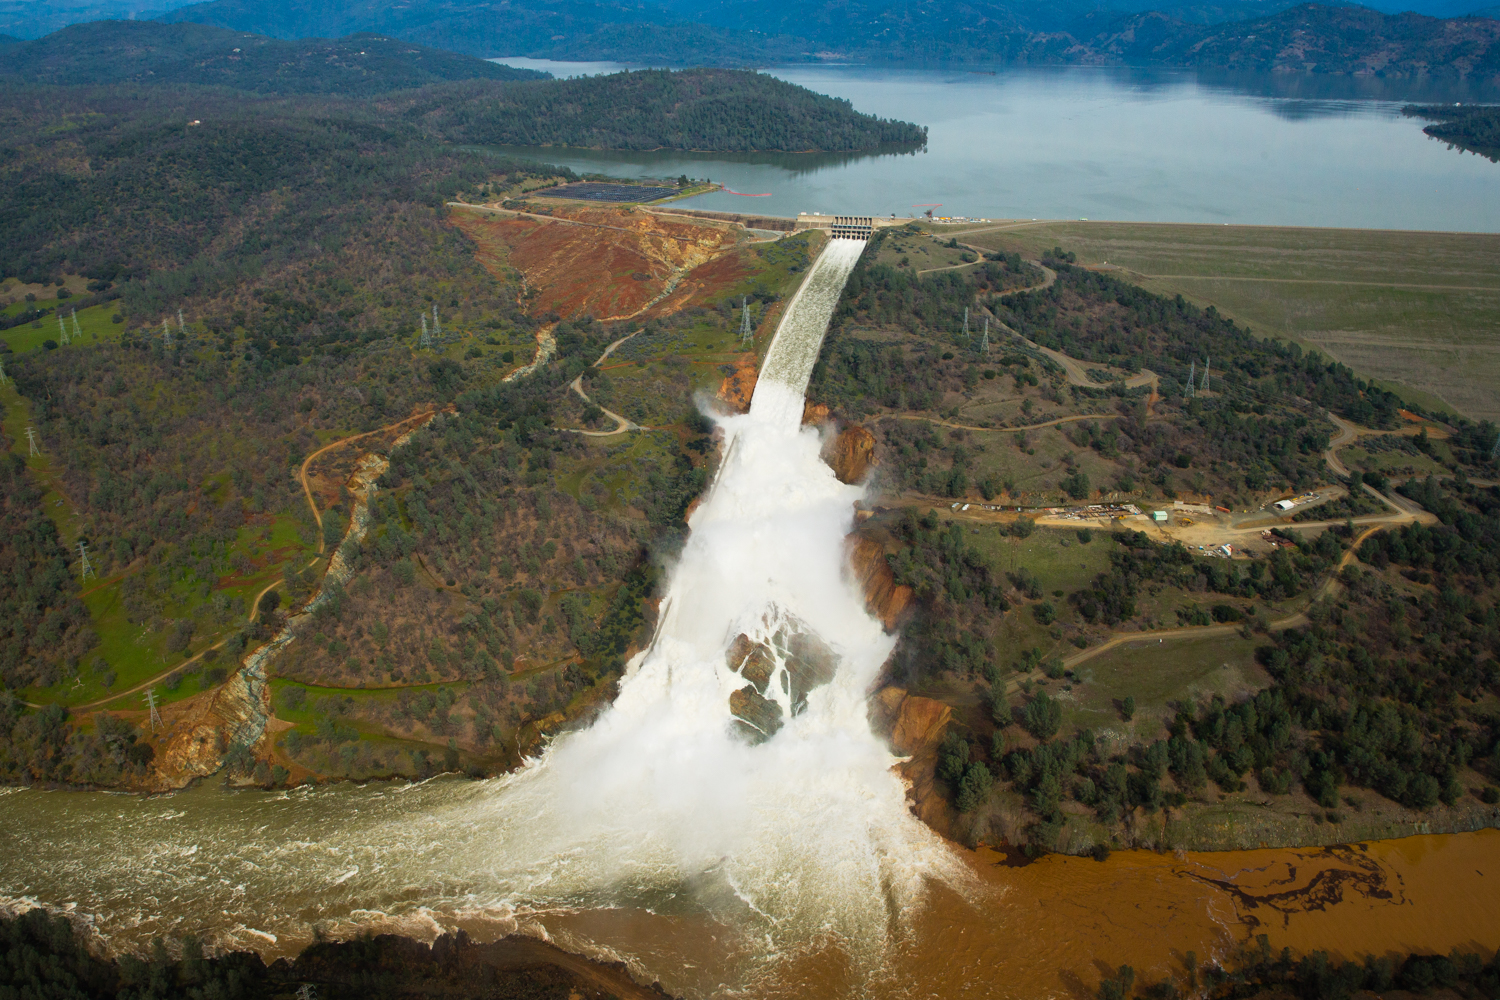 Oroville lake, the emergency spillway, and the damaged main spillway are seen from the air in Oroville, California